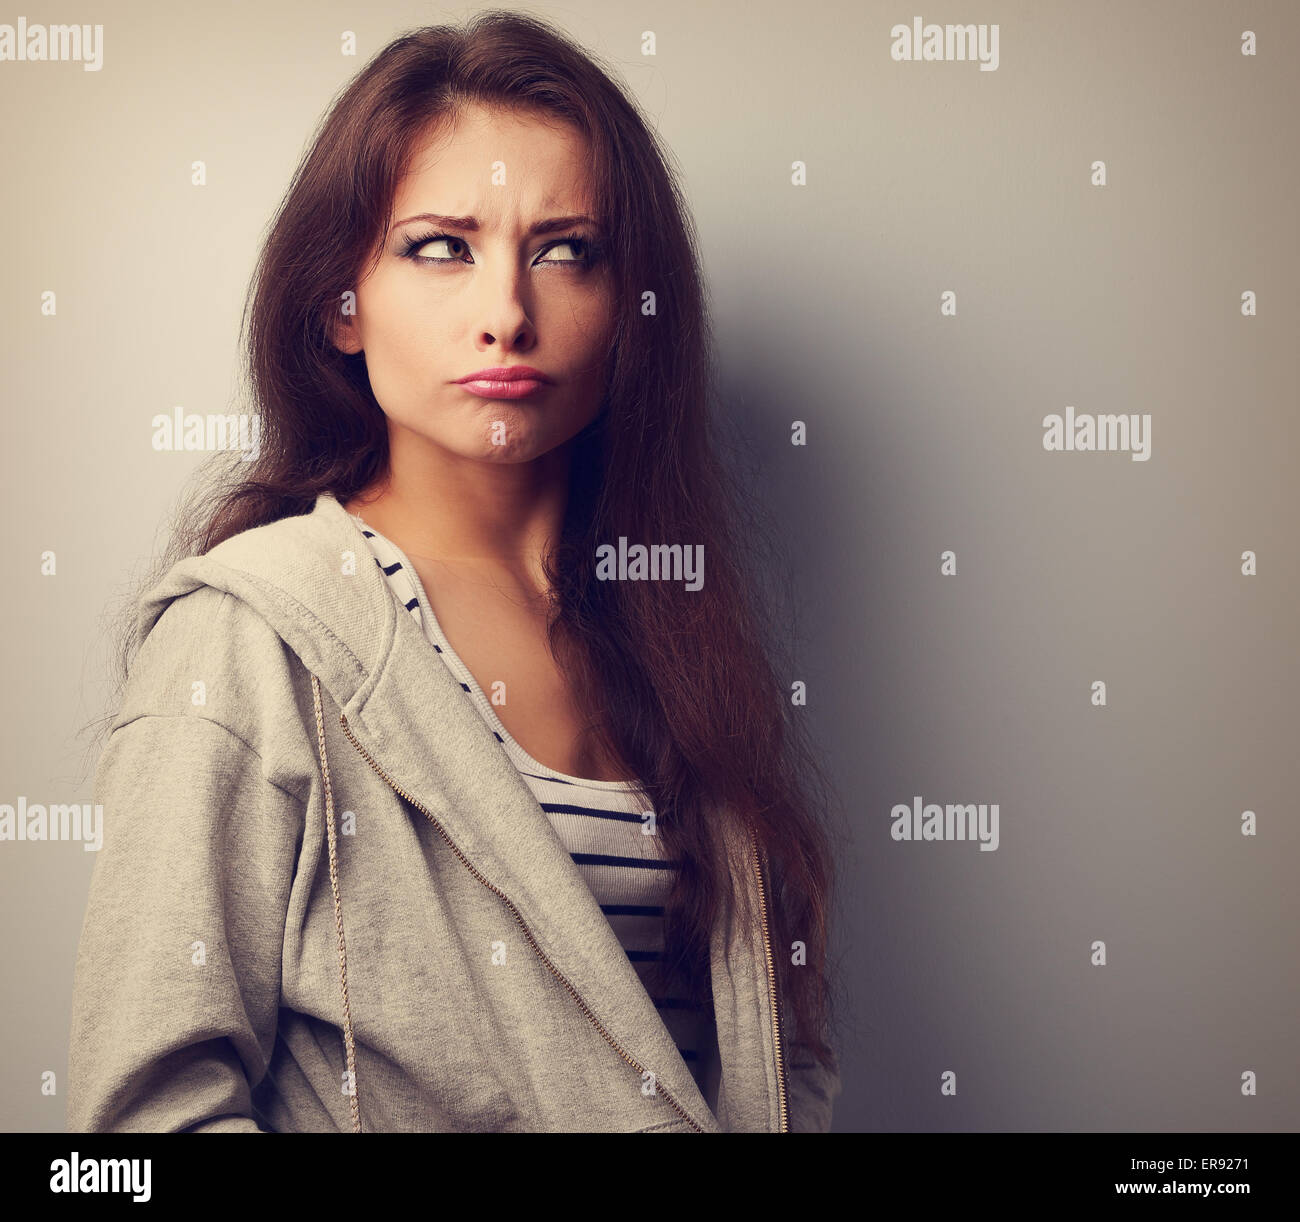 Grimacing fun young woman thinking and looking fun. Vintage portrait - Stock Image